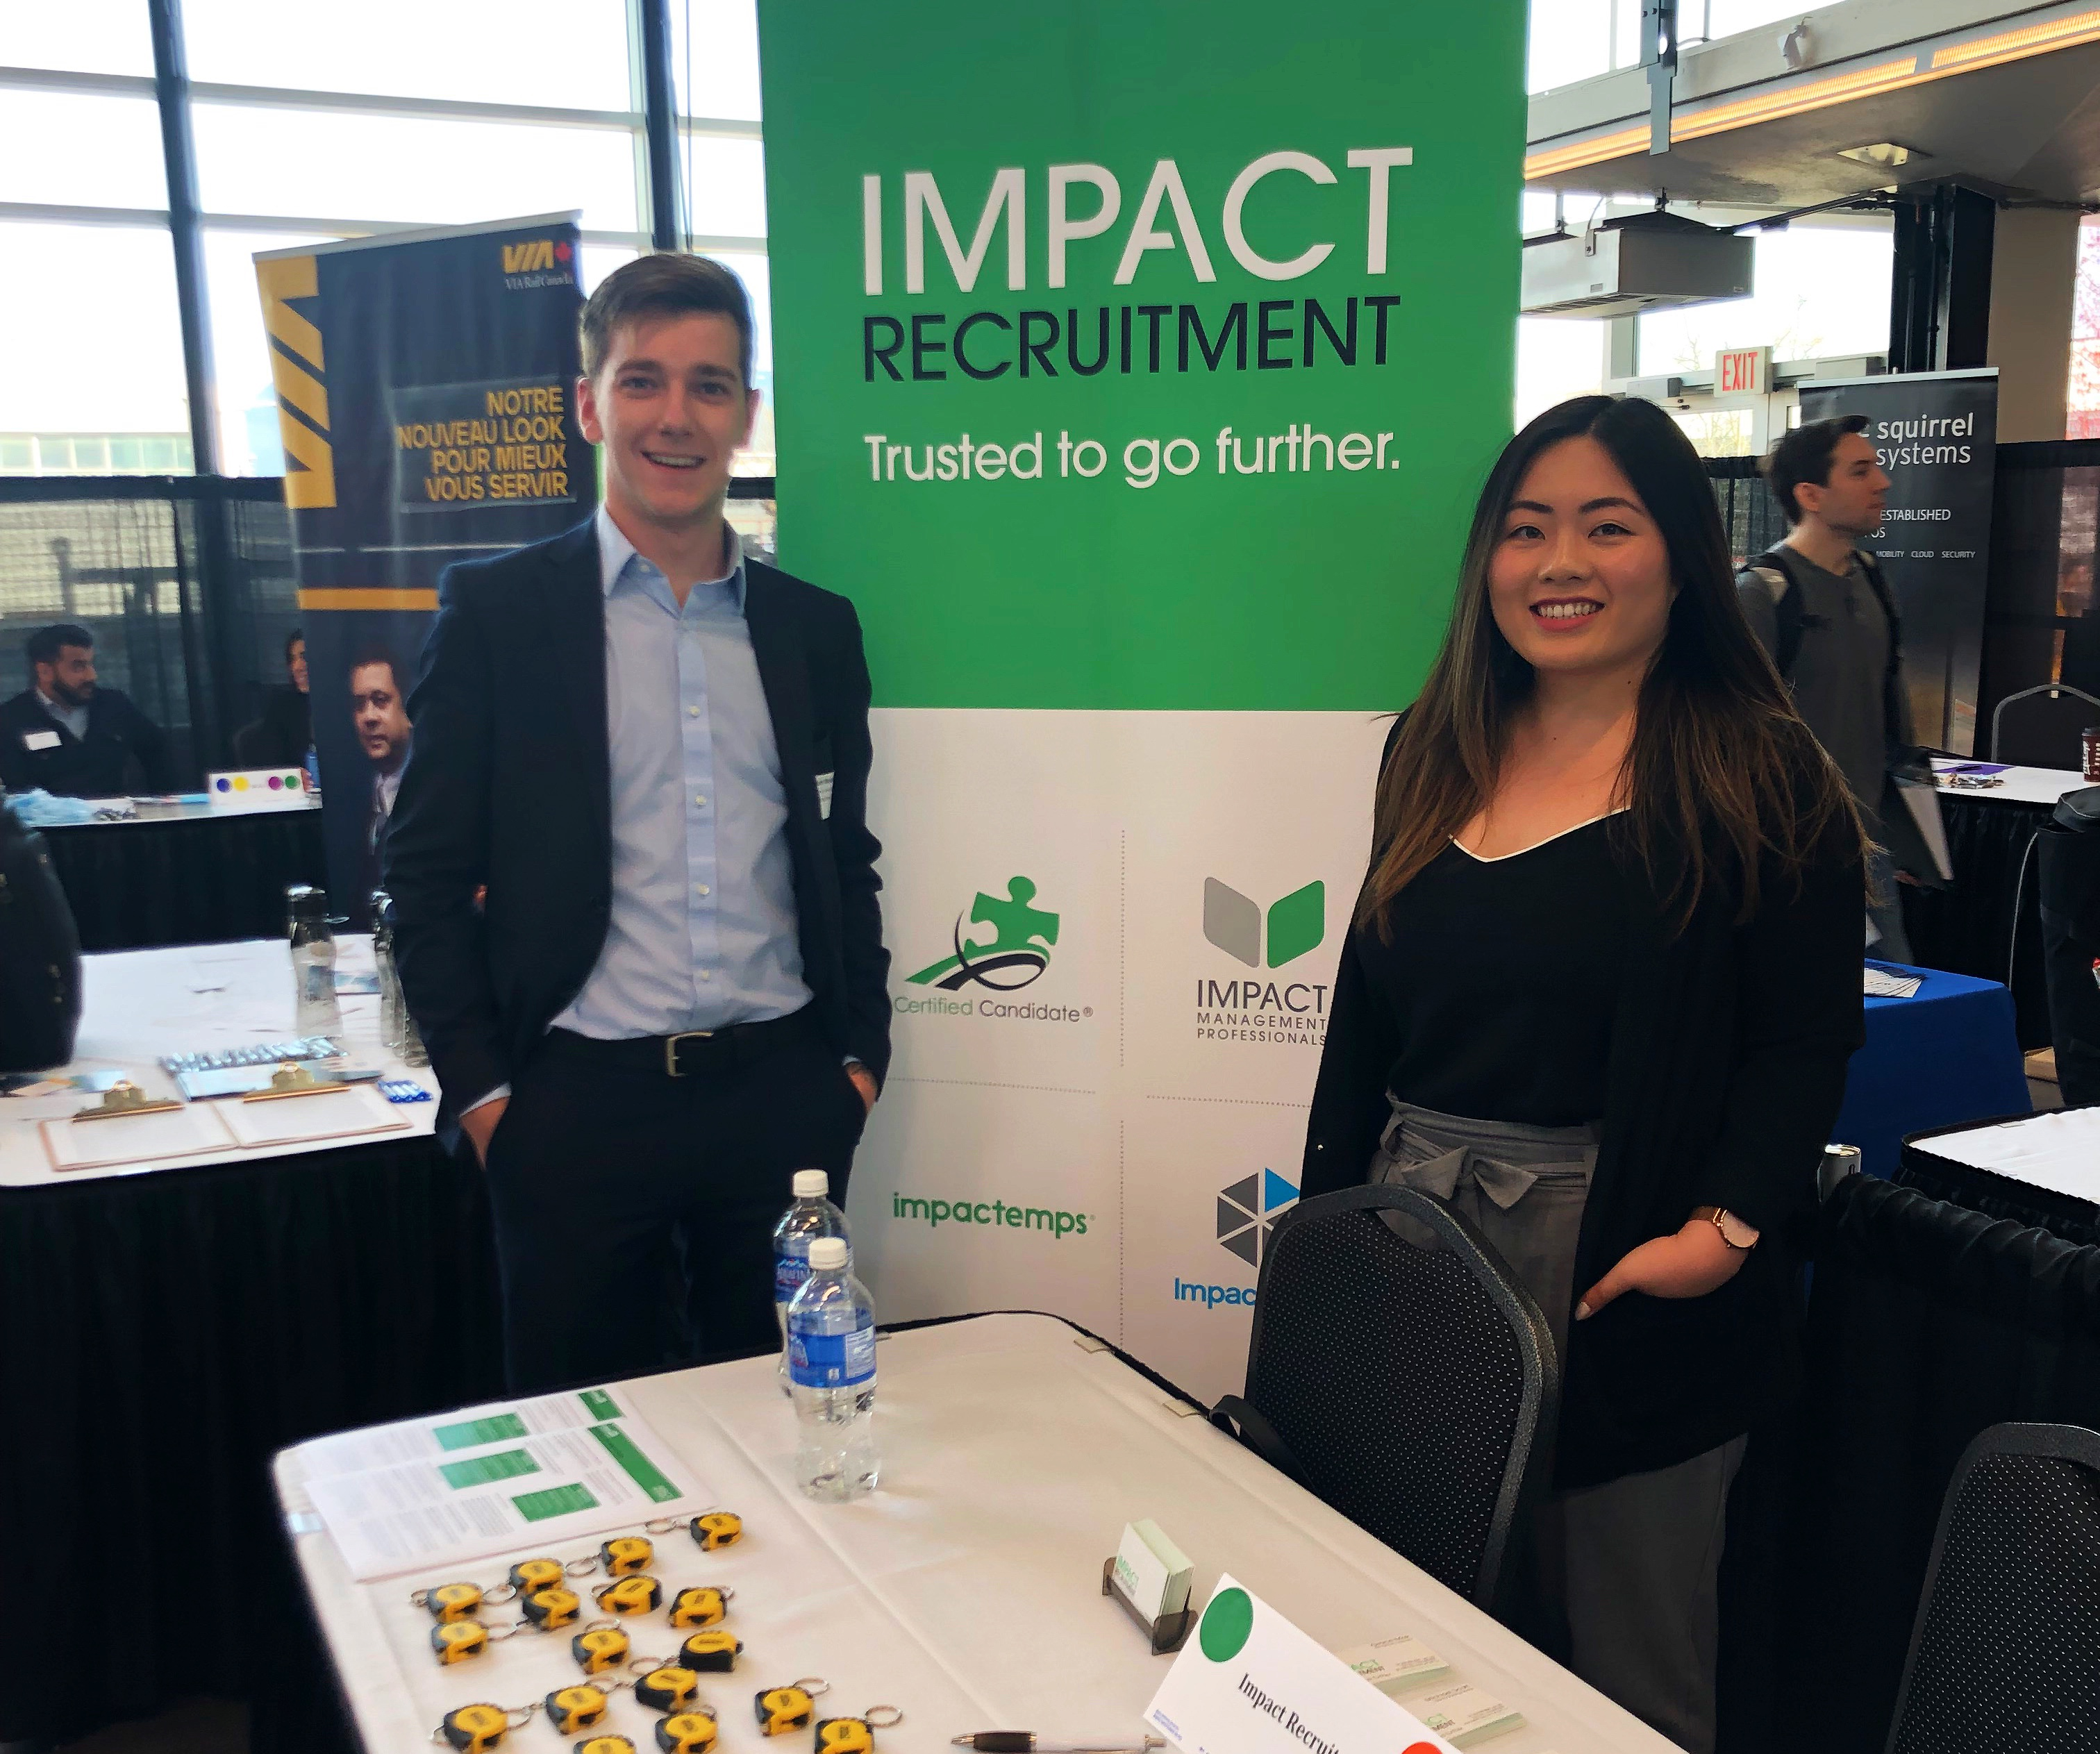 BCITSA 2 - Careers at Impact